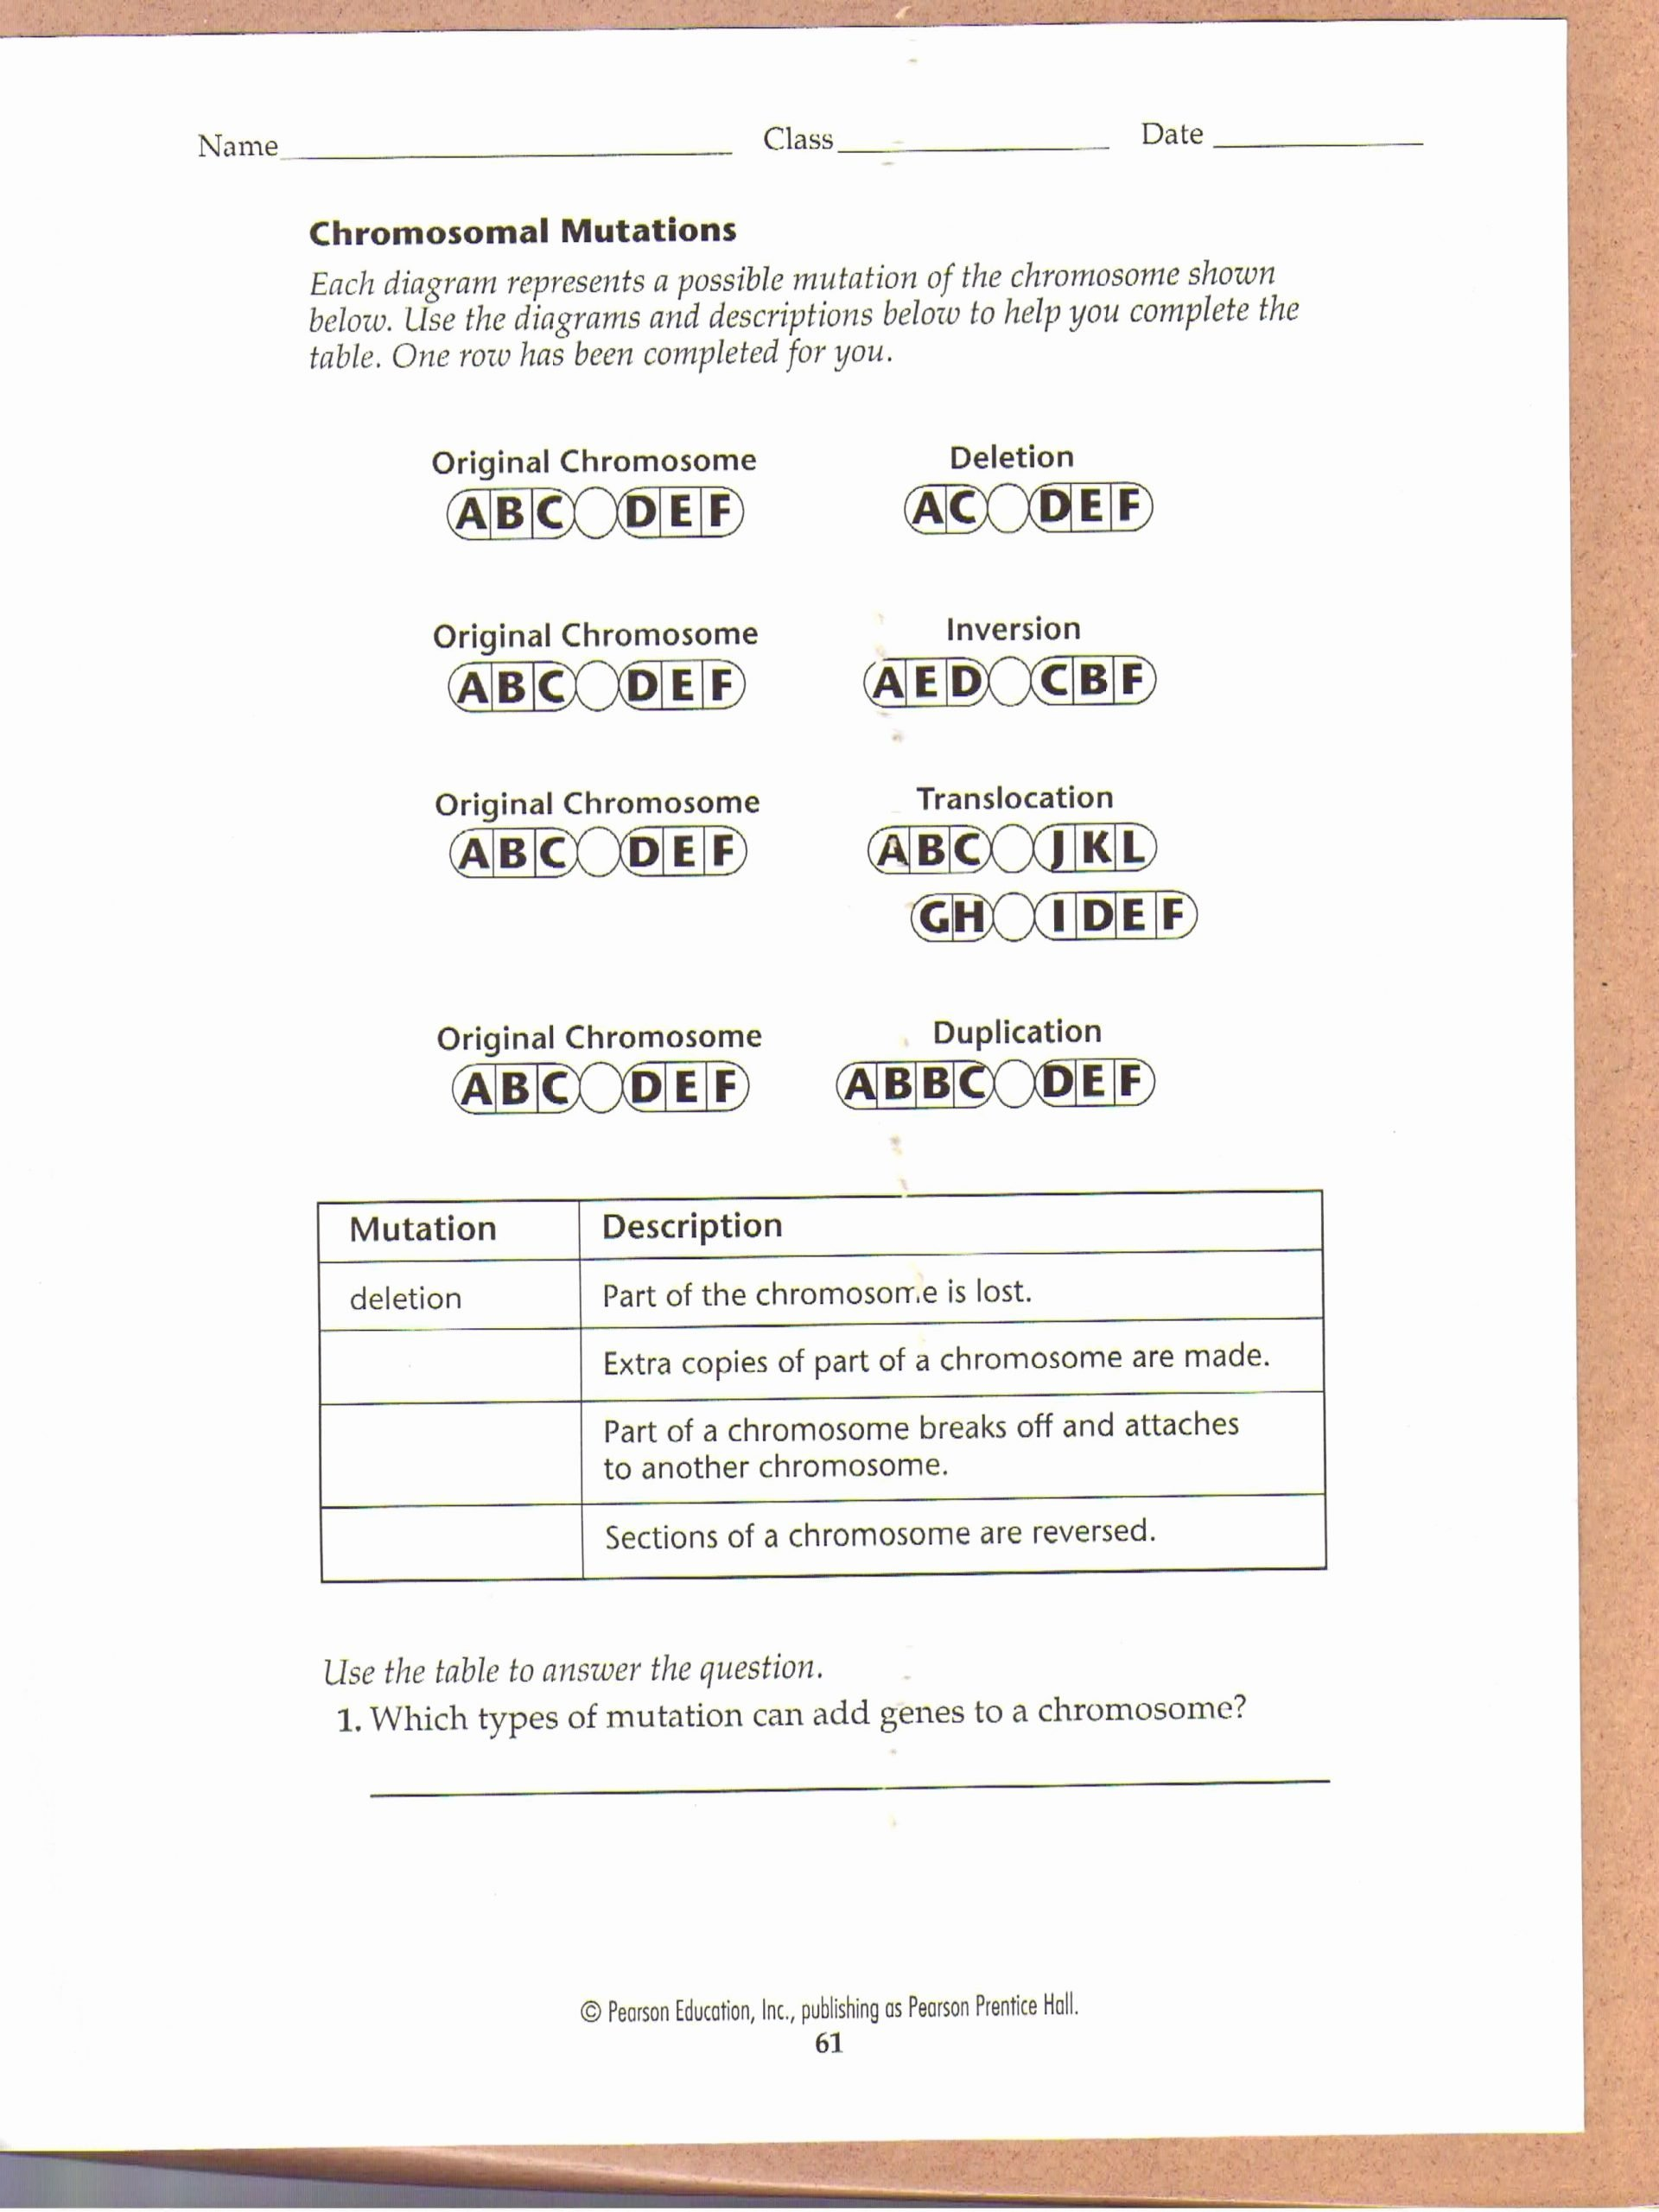 Genetic Mutation Worksheet Answer Key Kids Genetic Mutation Worksheet Answer Key Inspirational